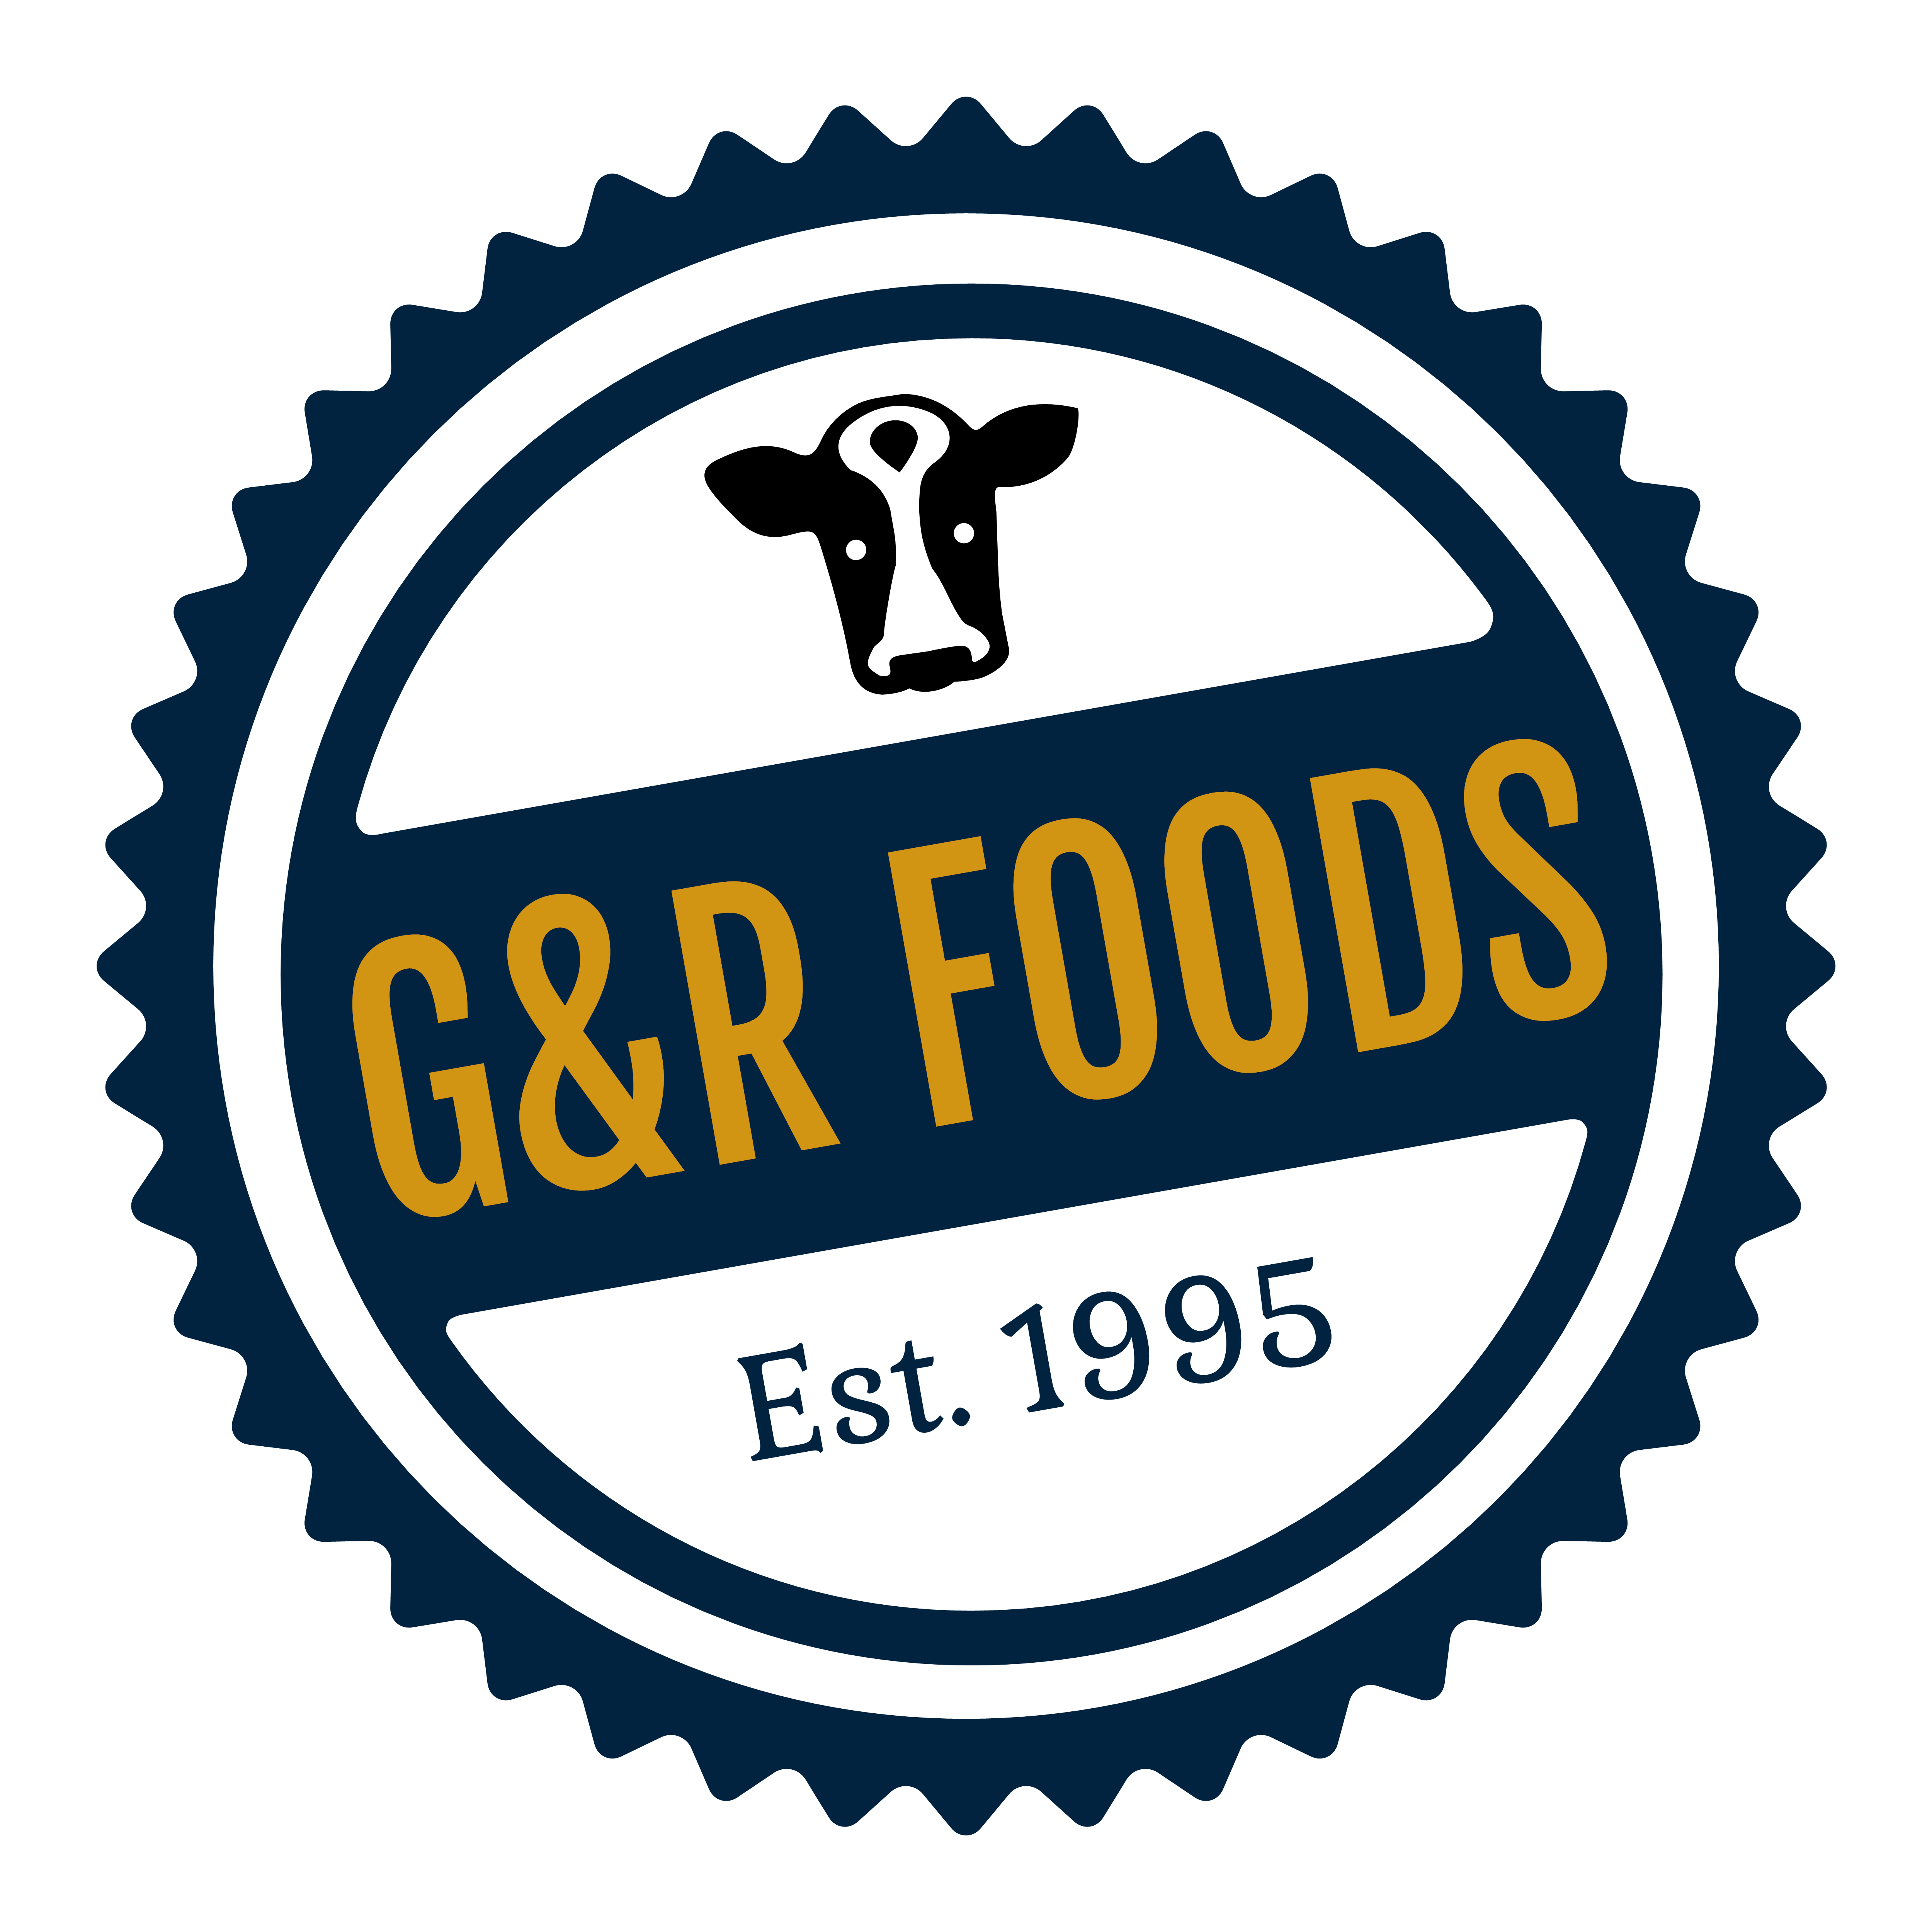 G & R Foods Inc. logo